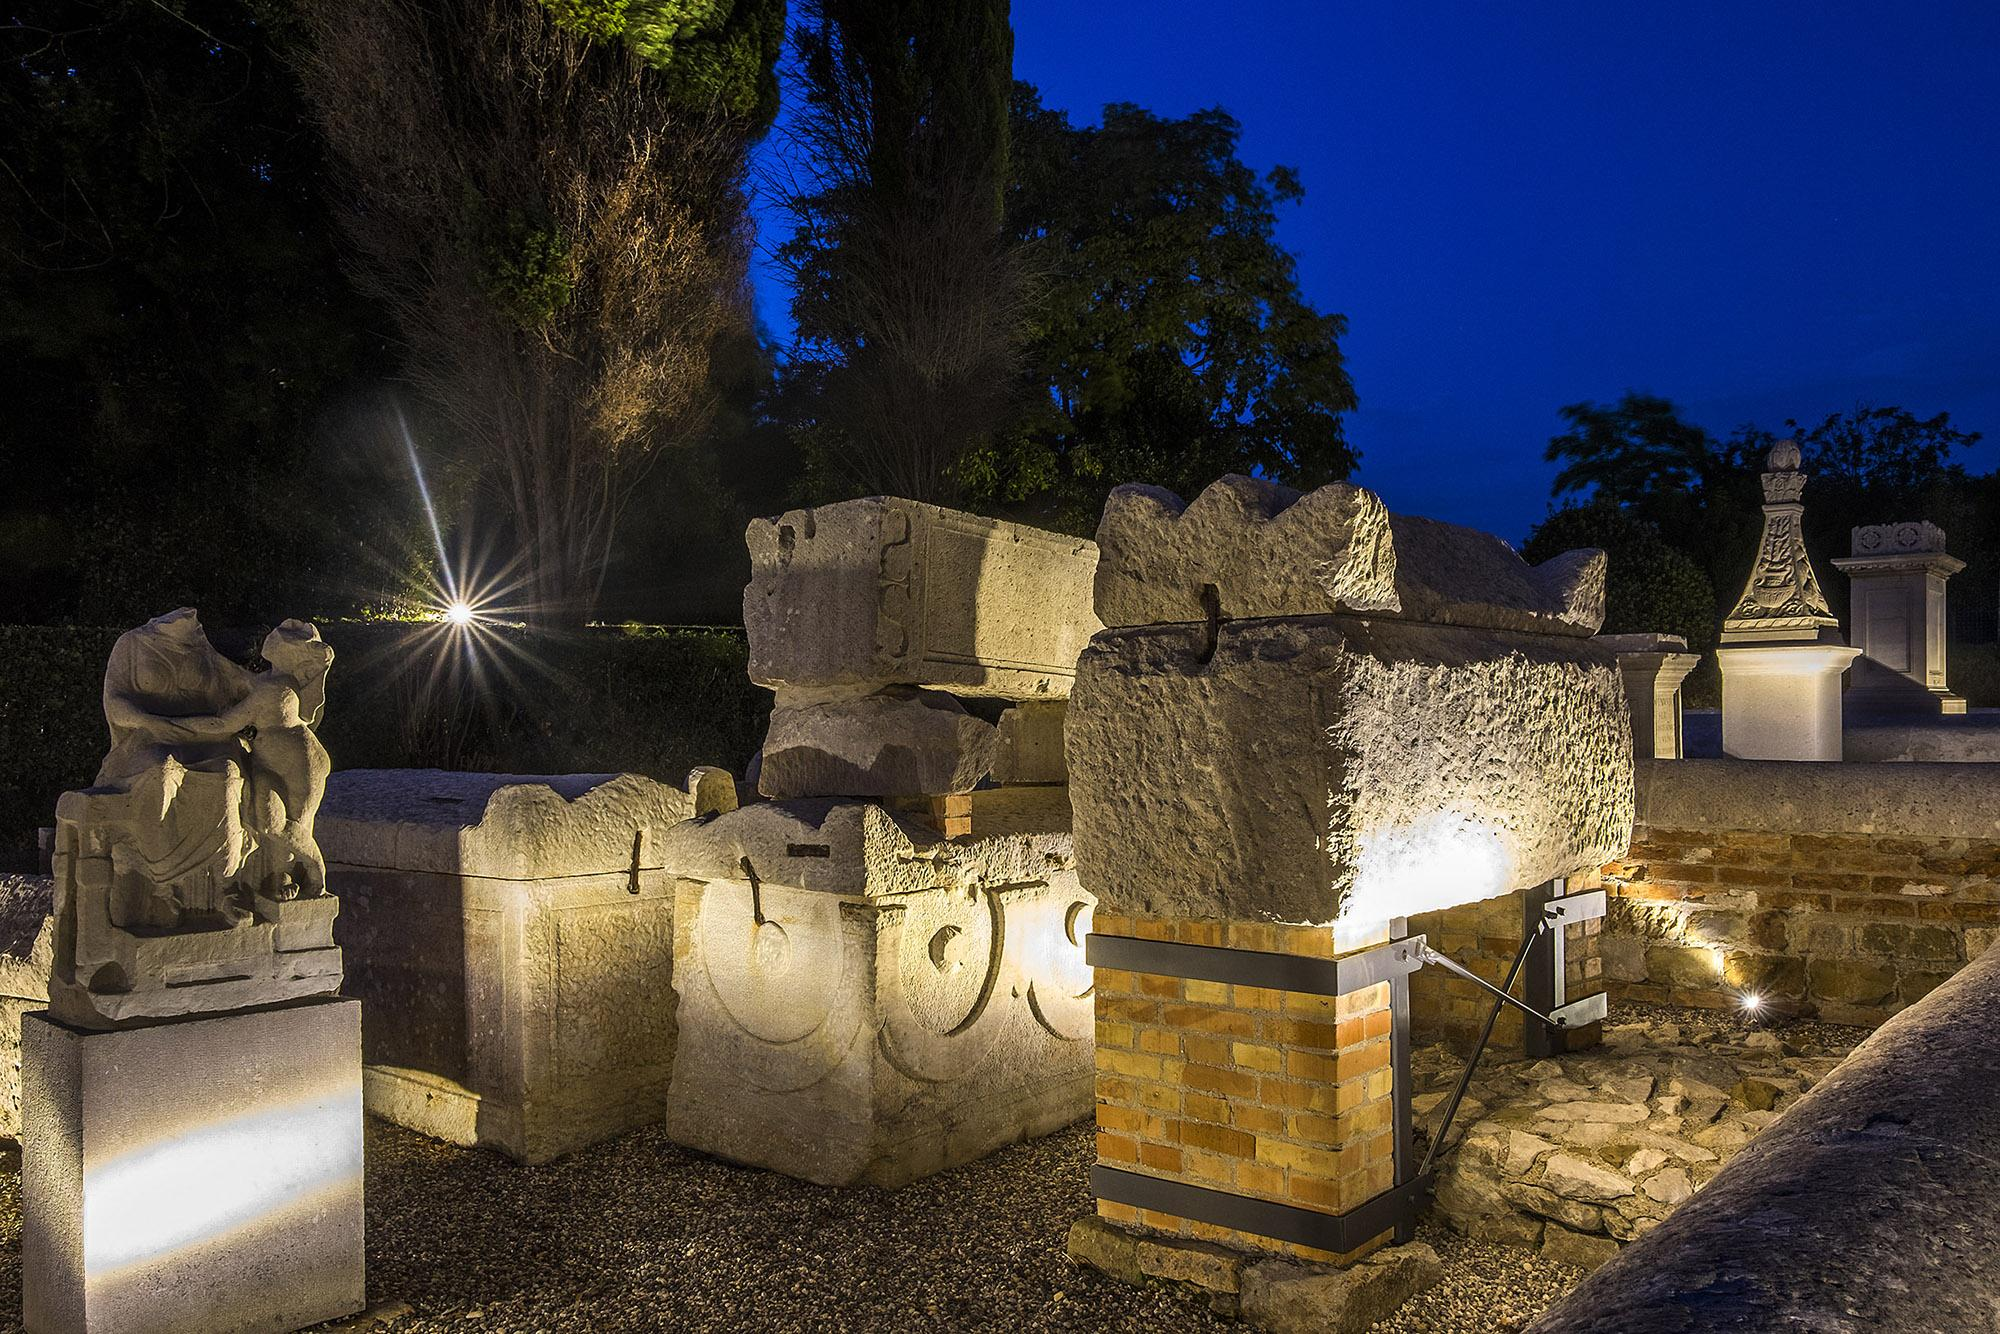 The area of the Necropolis, dating back to the 1st-3rd  centuries AD, is the only visible portion of several Roman burial grounds once found around Aquileia. – © Gianluca Baronchelli